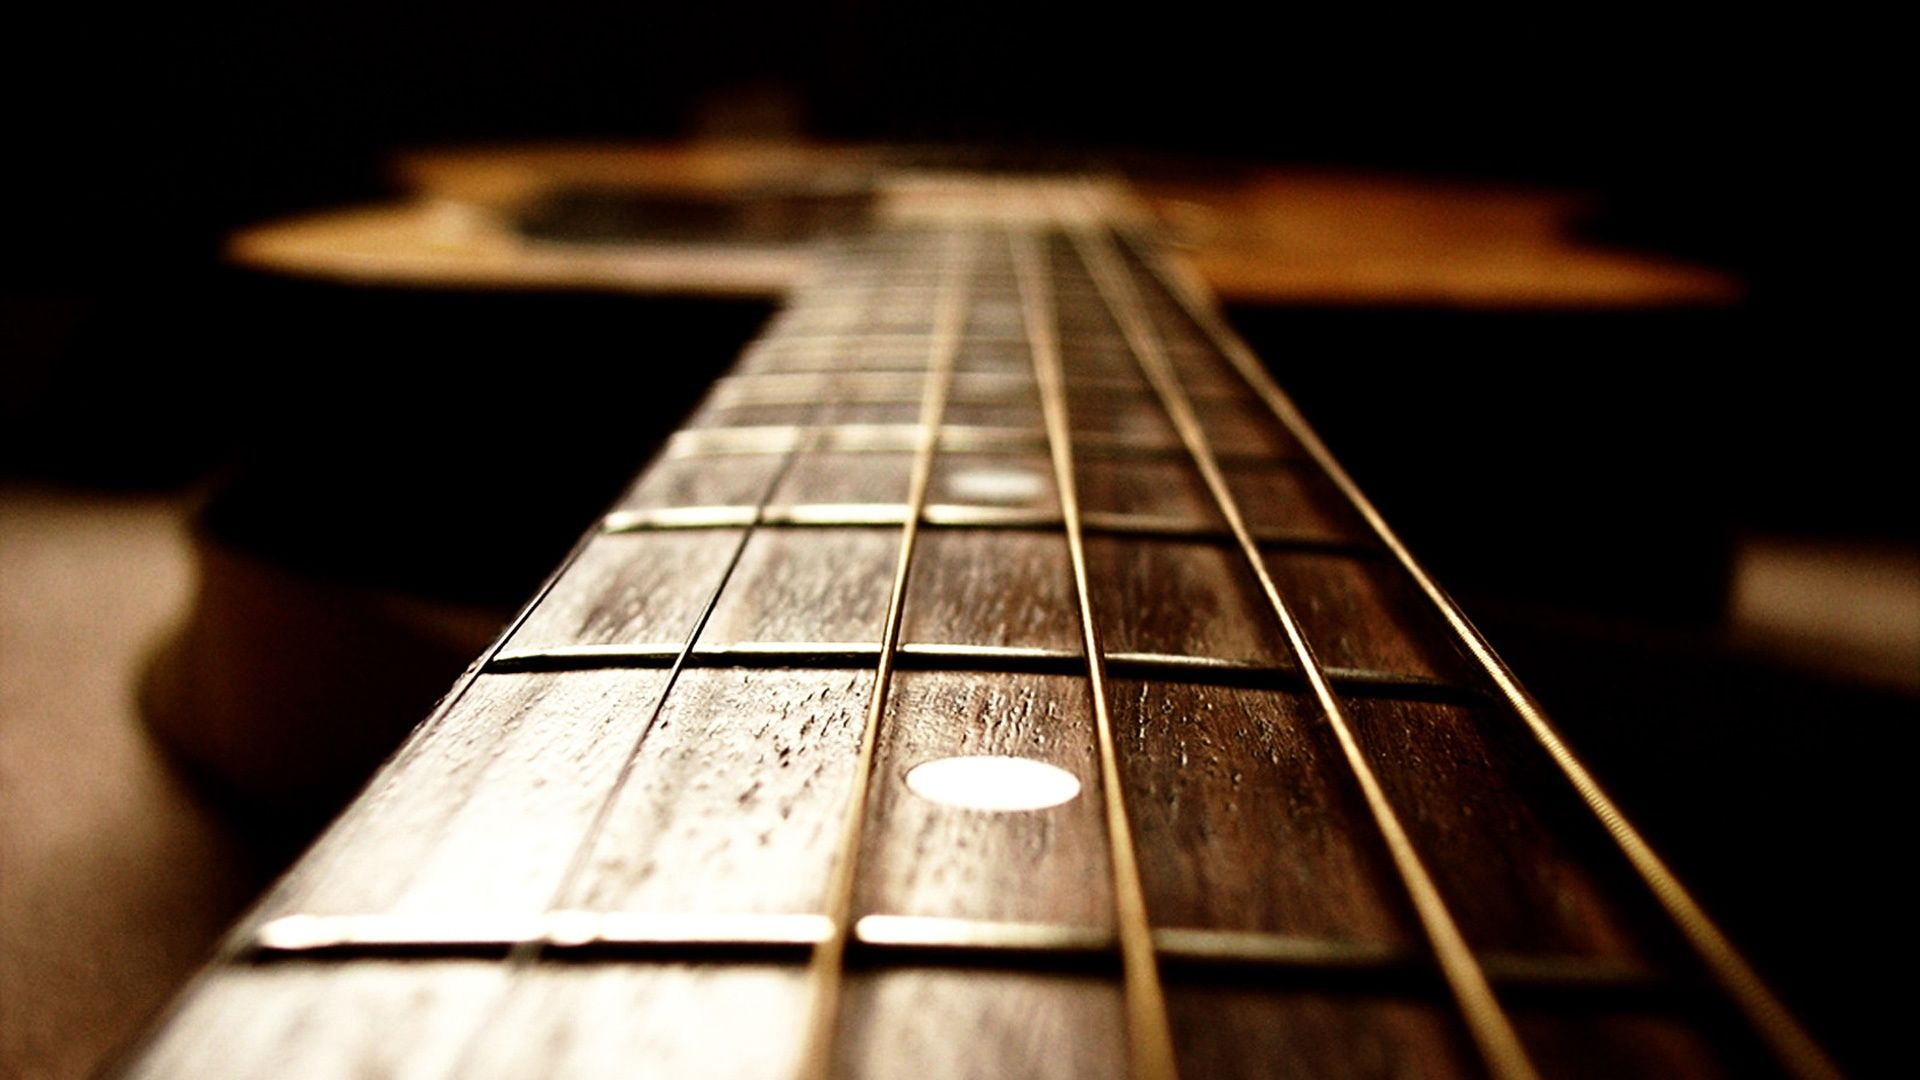 HD Acoustic Guitar Wallpaper 1920x1080